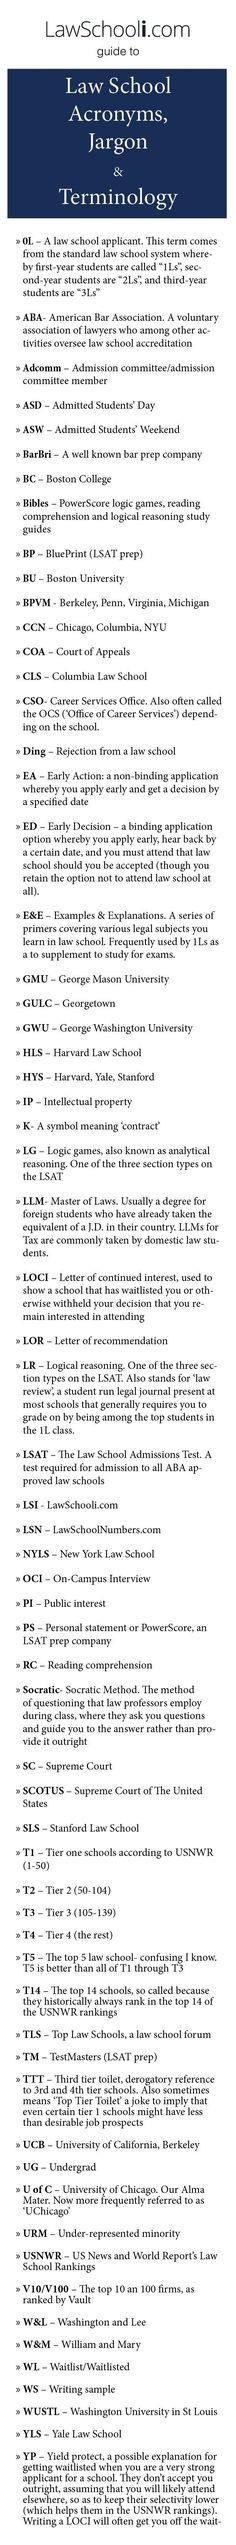 What to Put on a Law School Application Resumé Law school - harvard law school resume